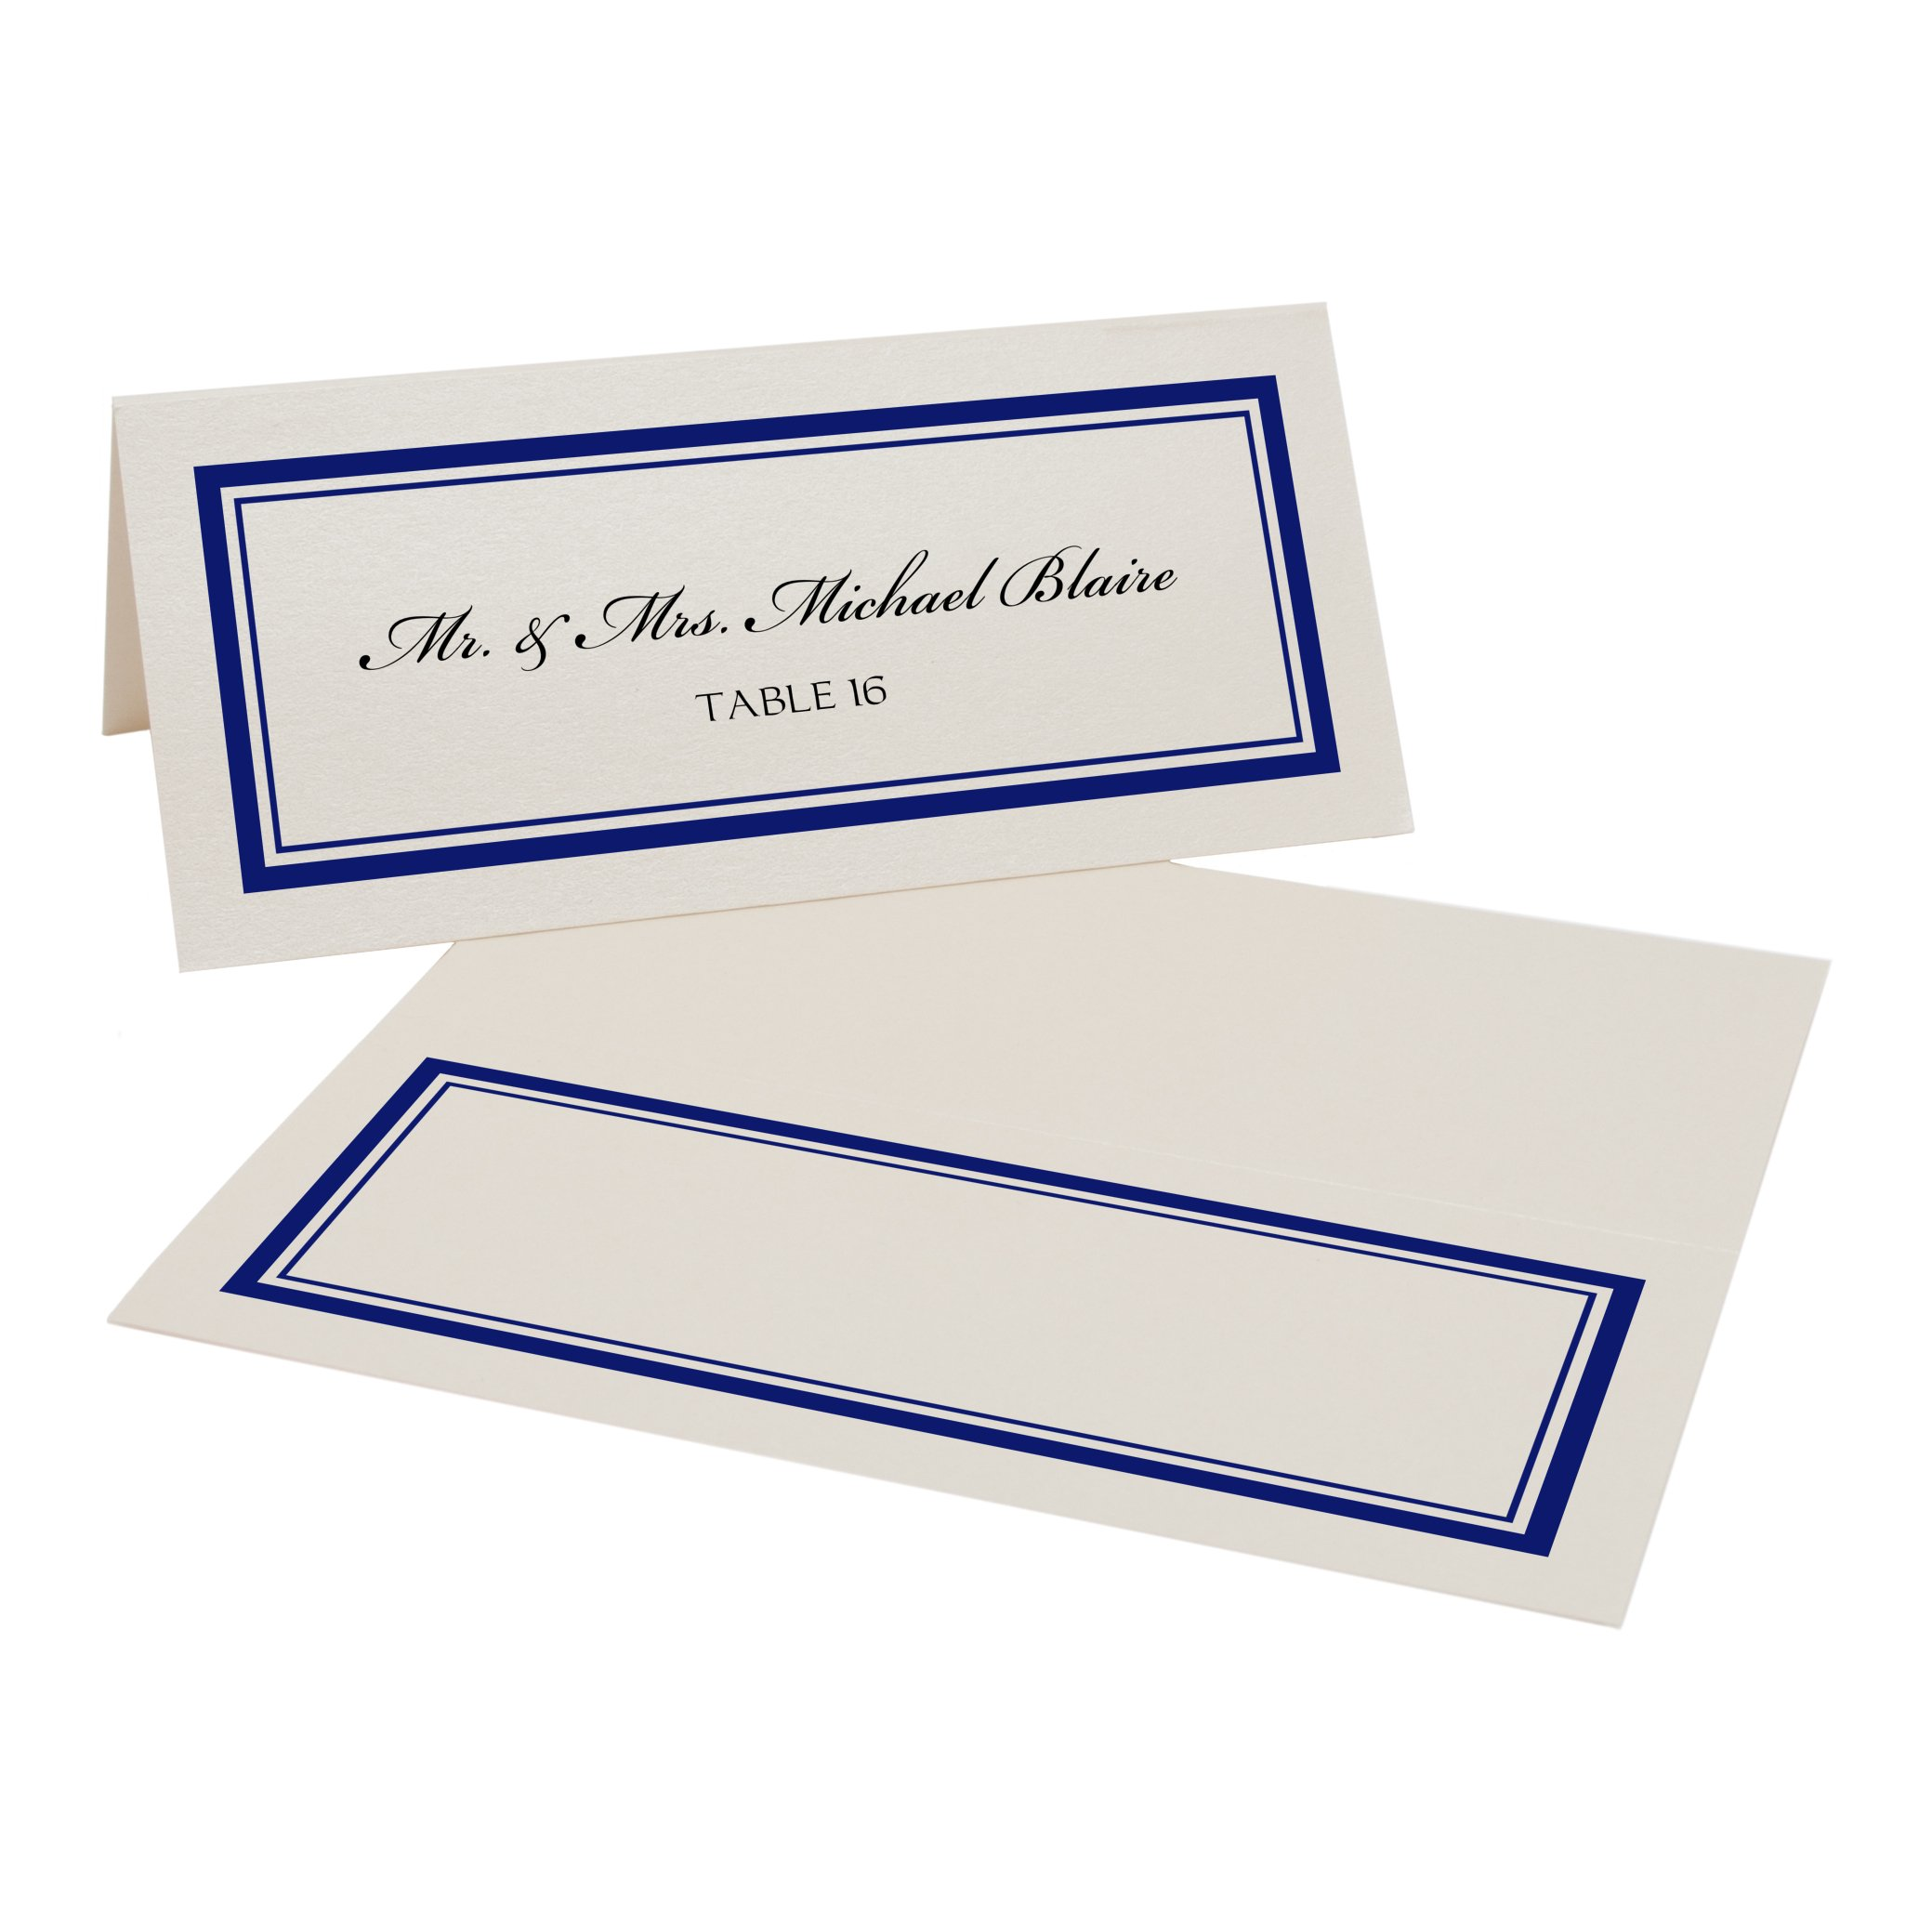 Double Line Border Place Cards, Champagne, Navy, Set of 350